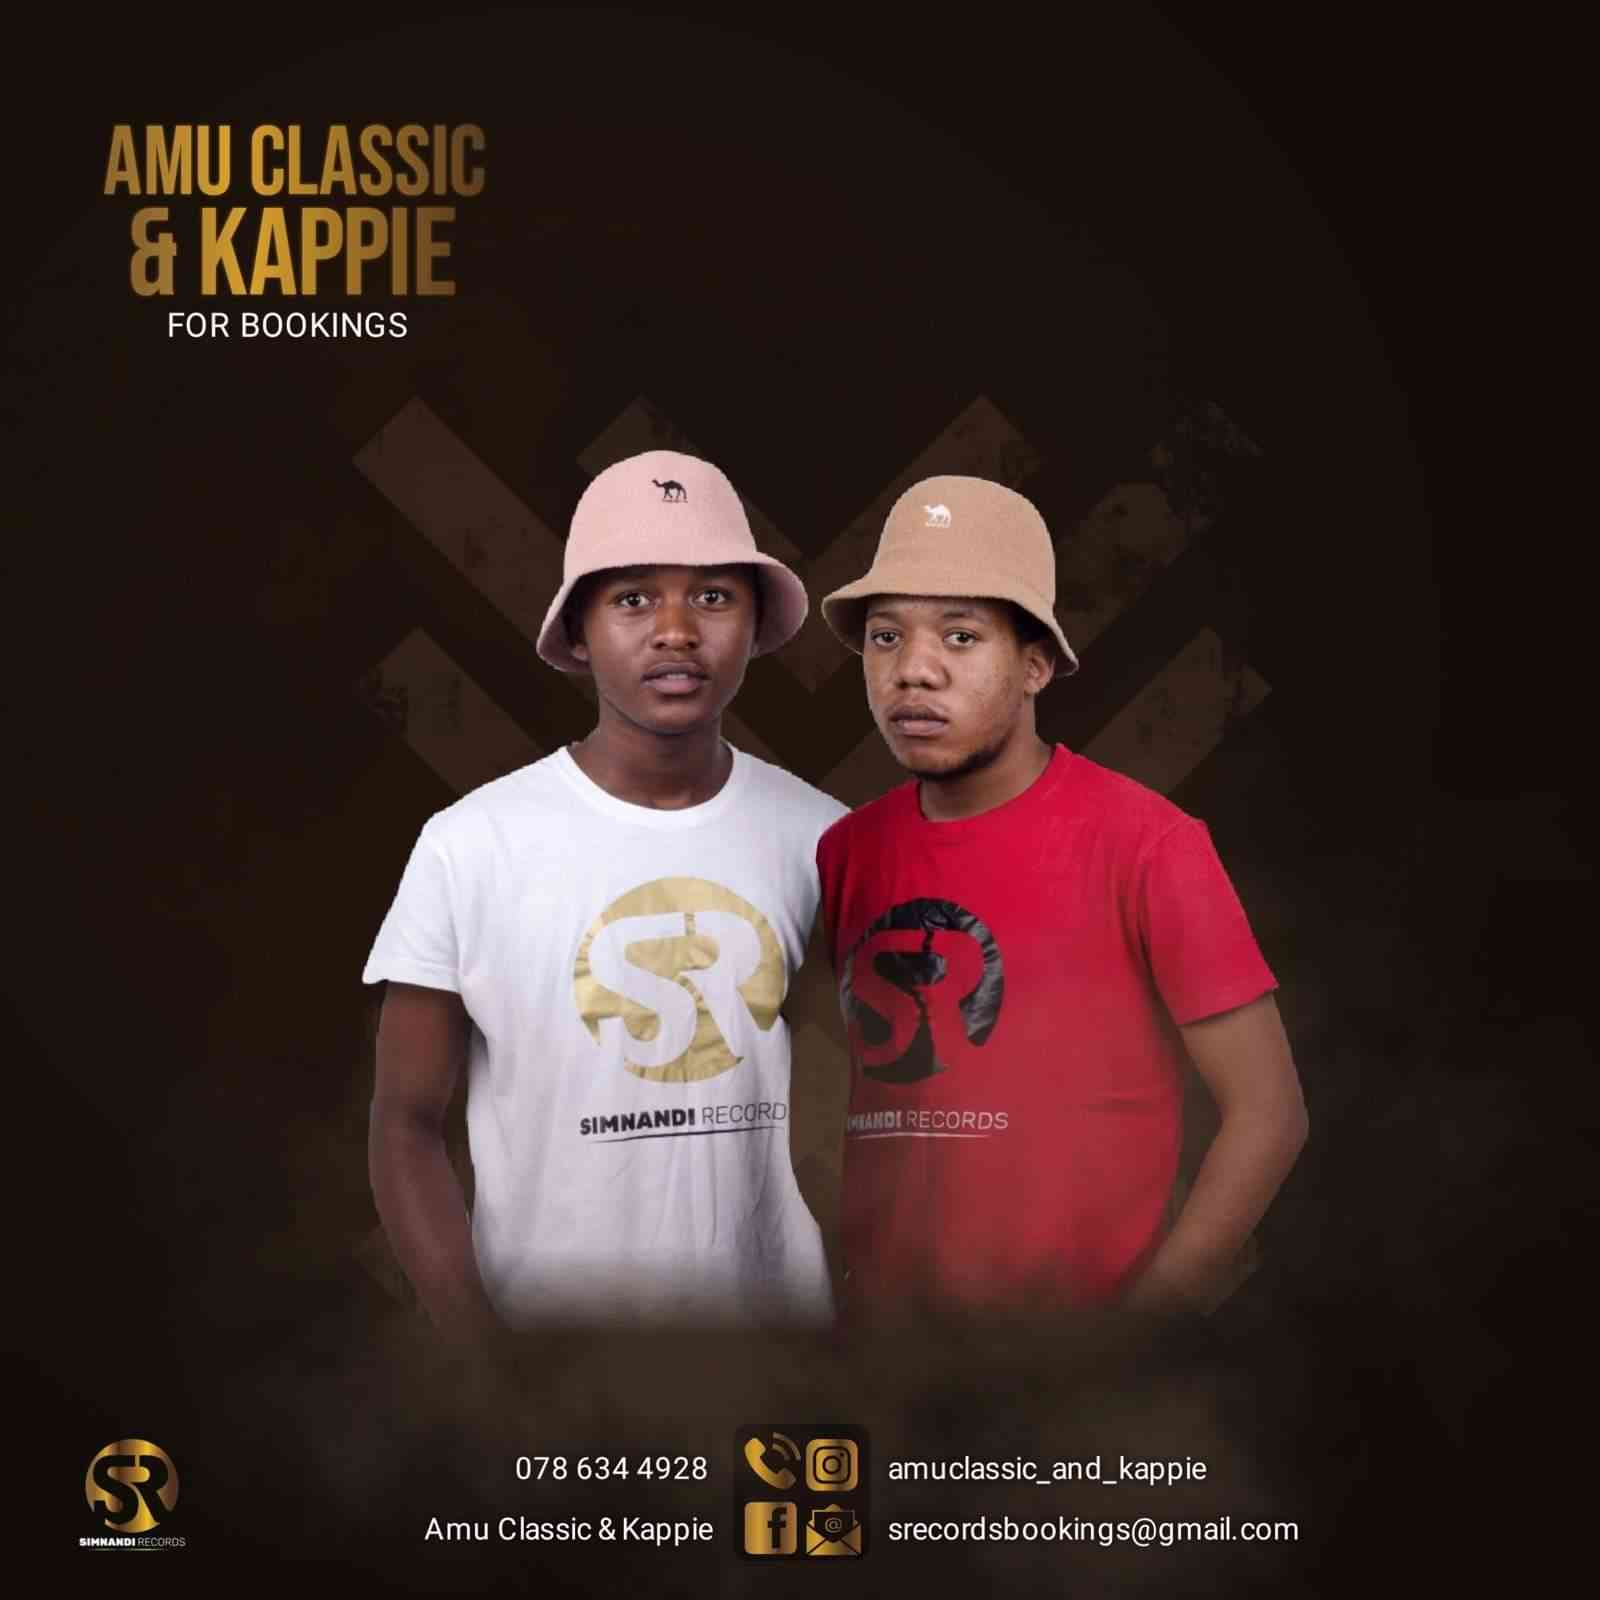 Amu Classic & Dj Kappie From My Home (Soulfied Mix)